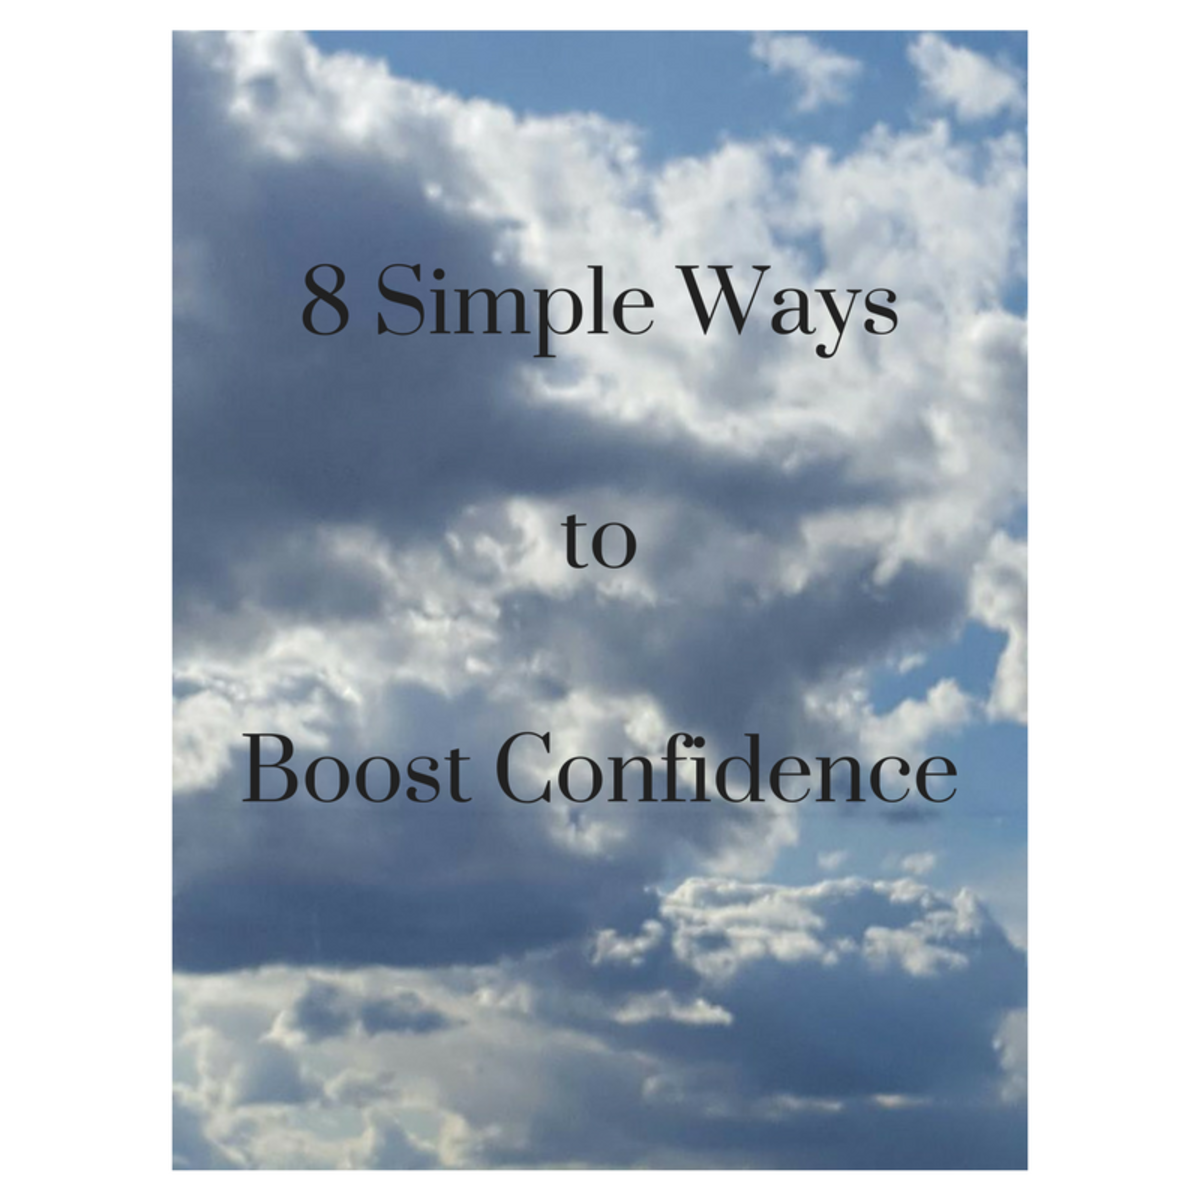 8 Simple Ways to Boost Confidence